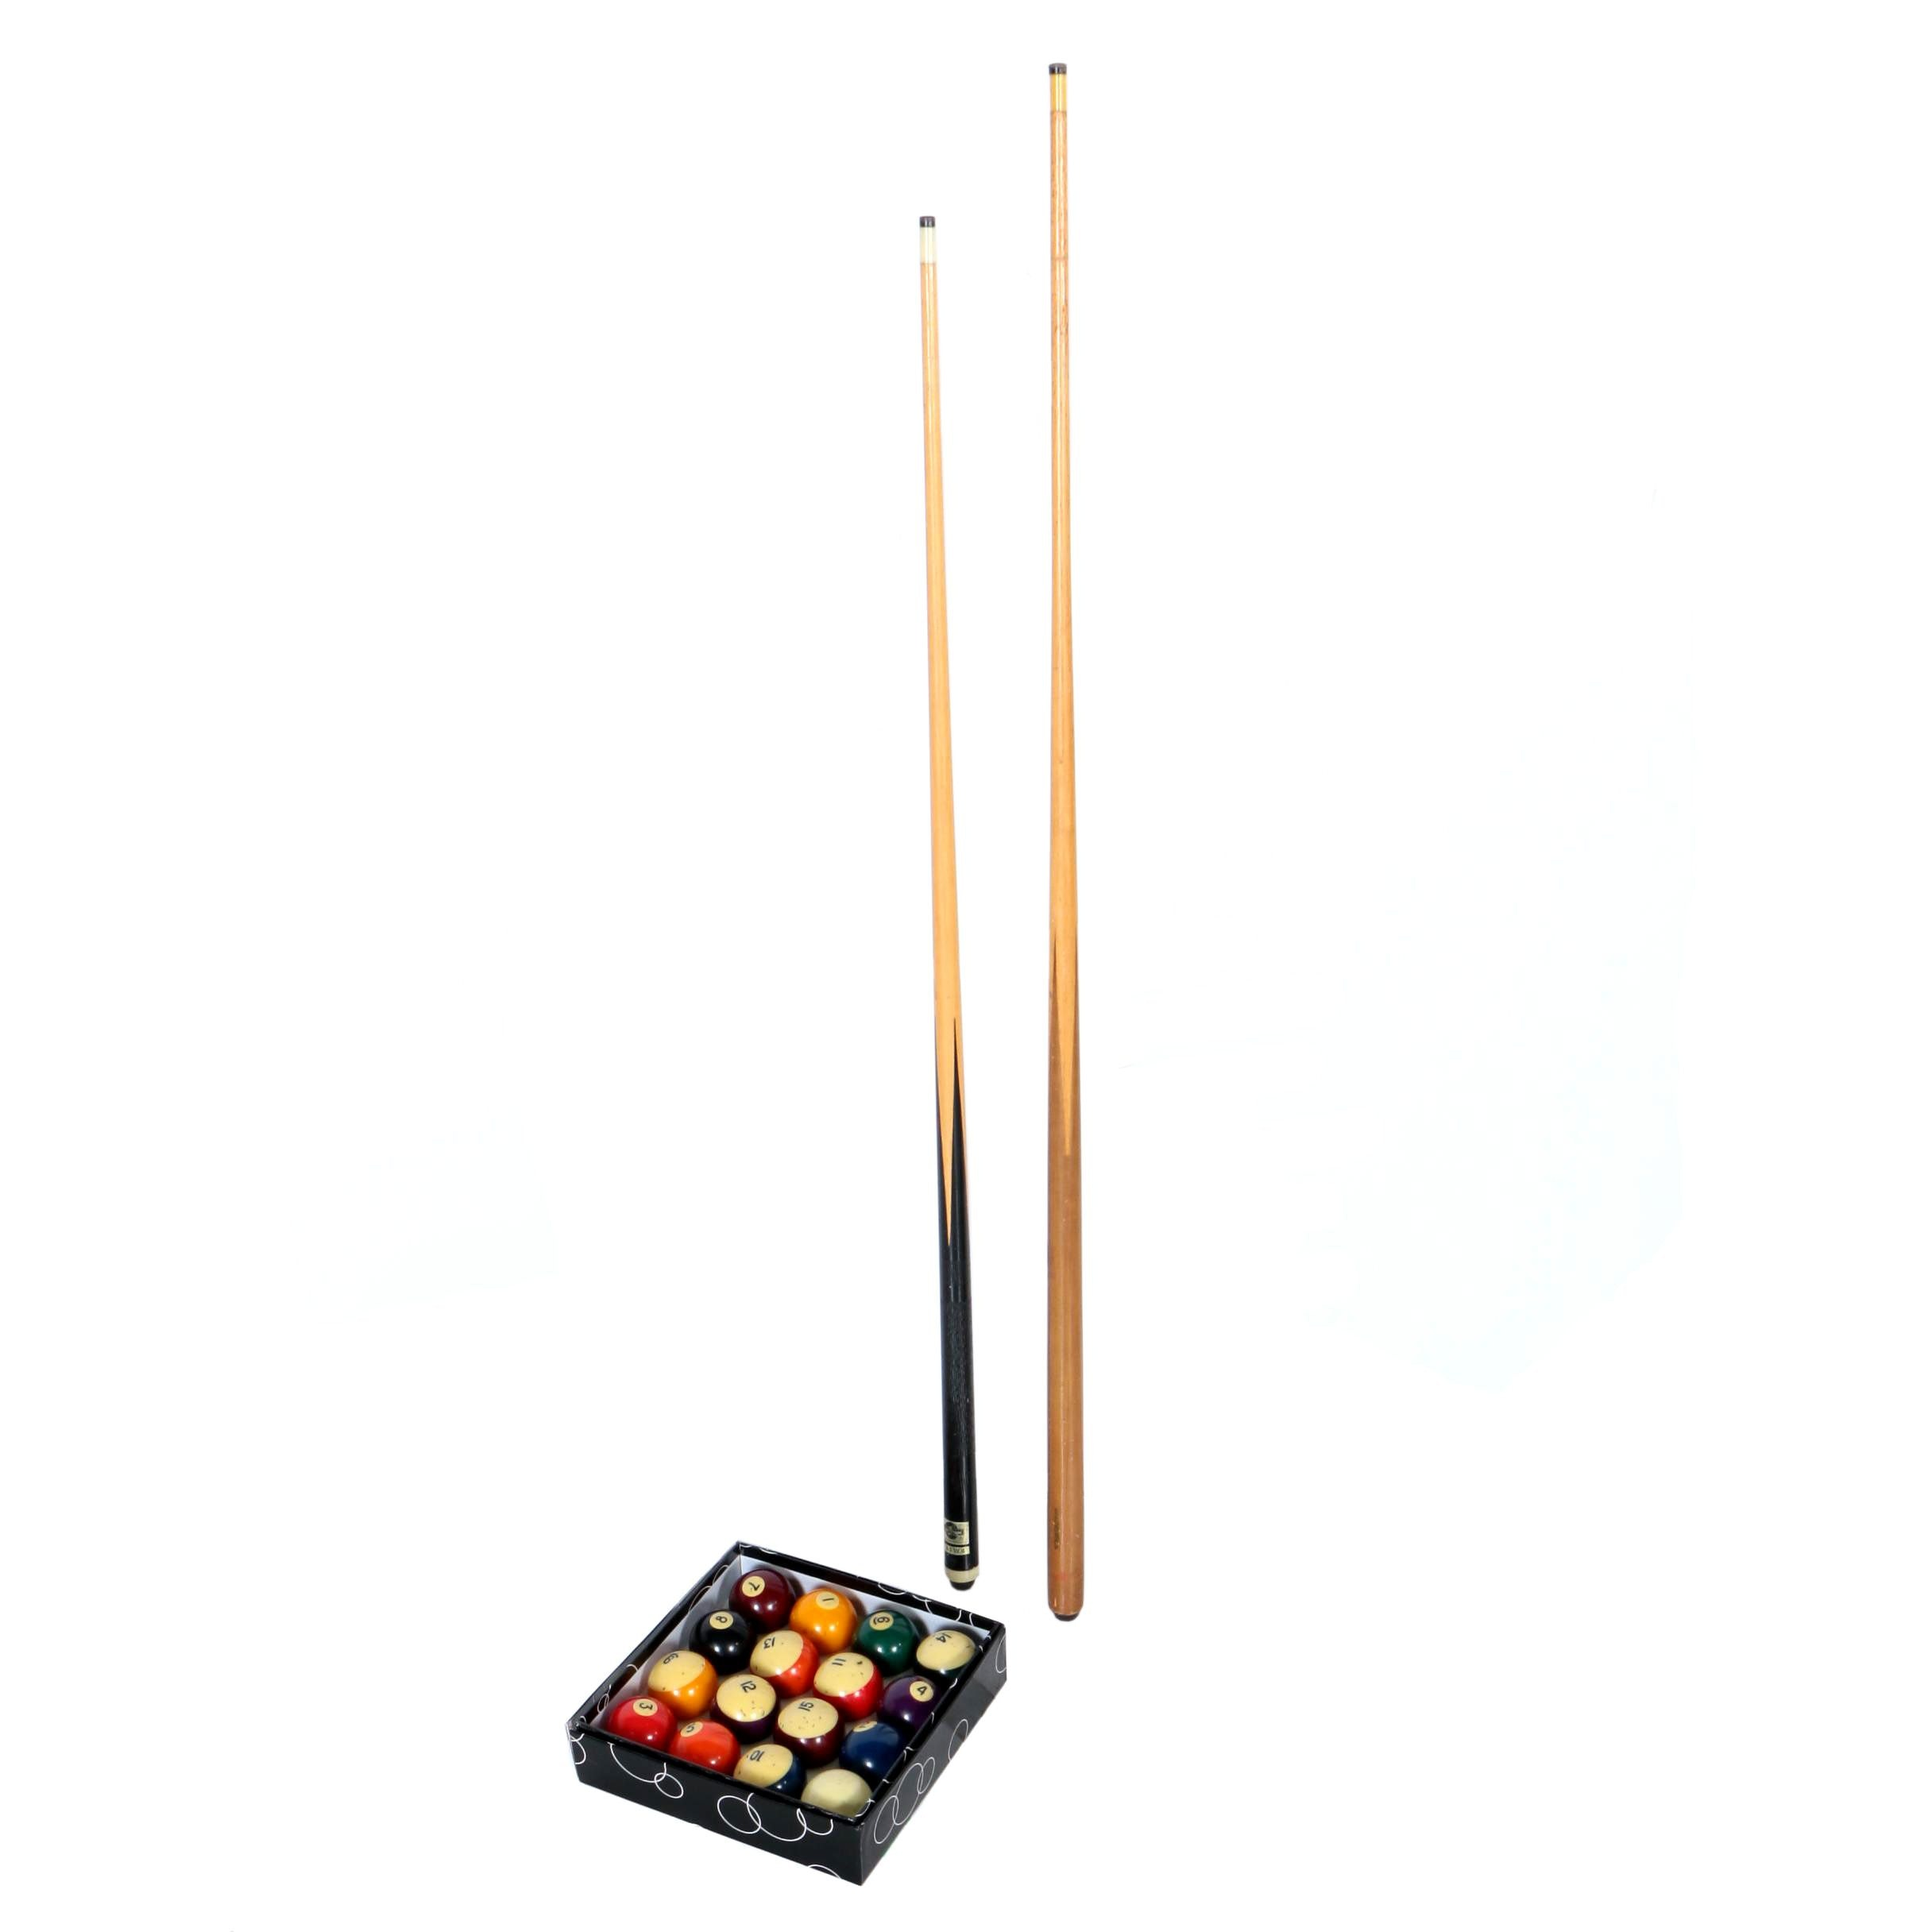 Set of Pool Balls and Cue Sticks, including a Brunswick and a High Kore